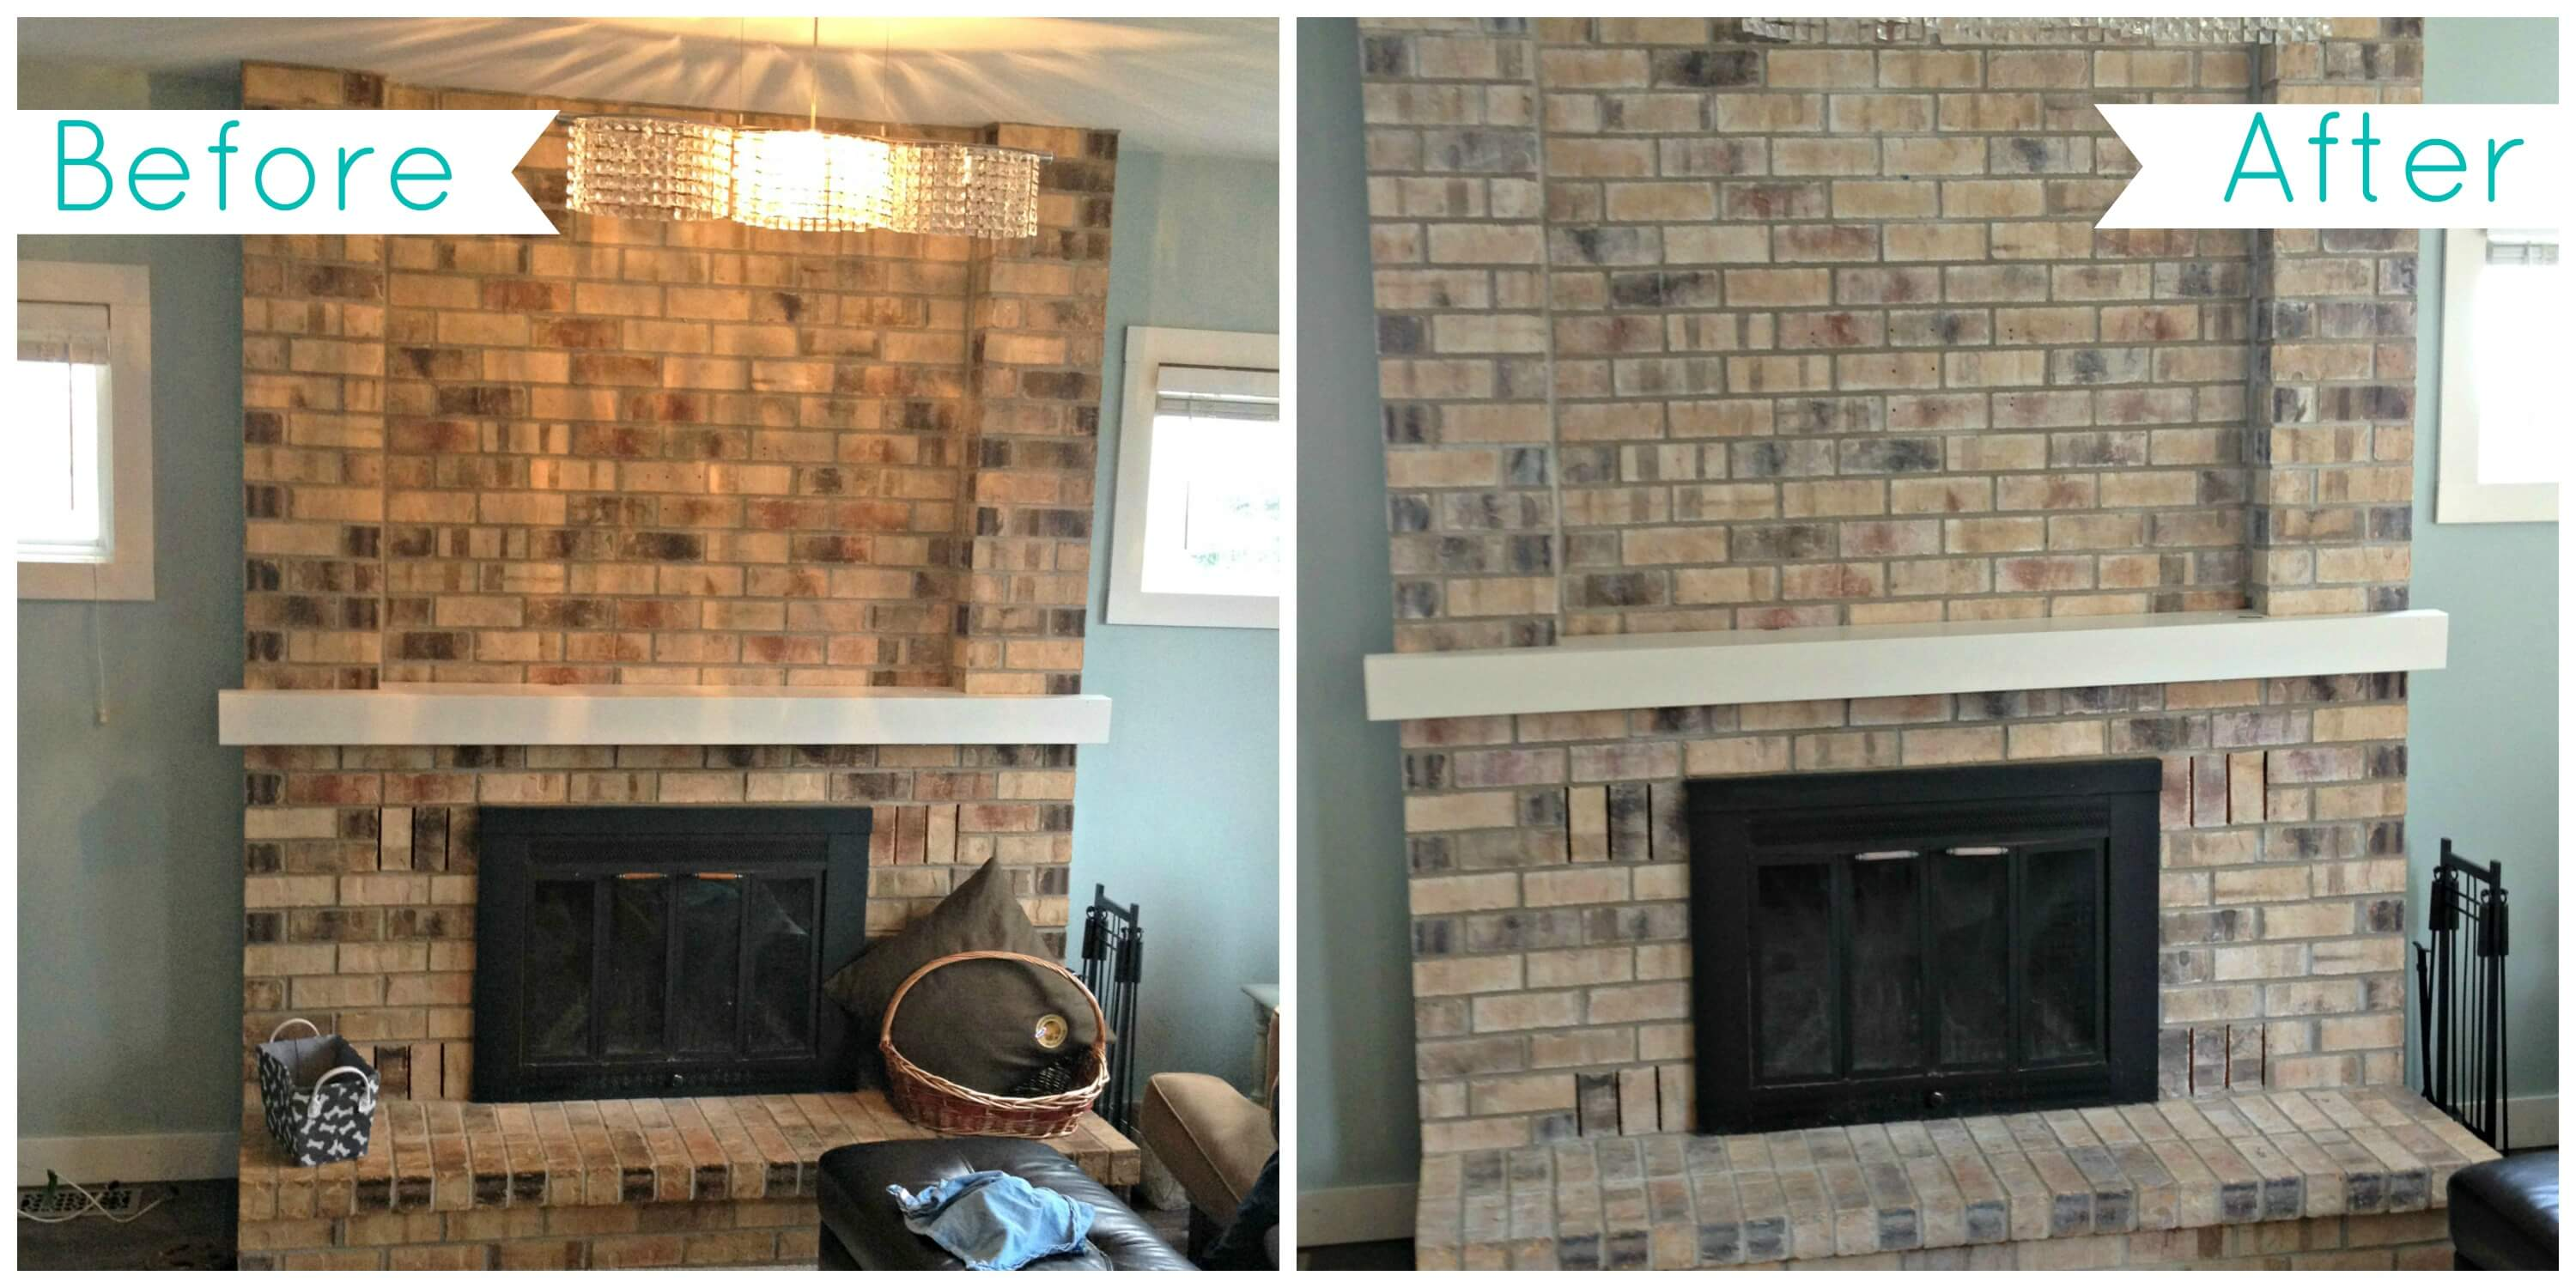 Stone tiles can be redone for an incredibly effective look